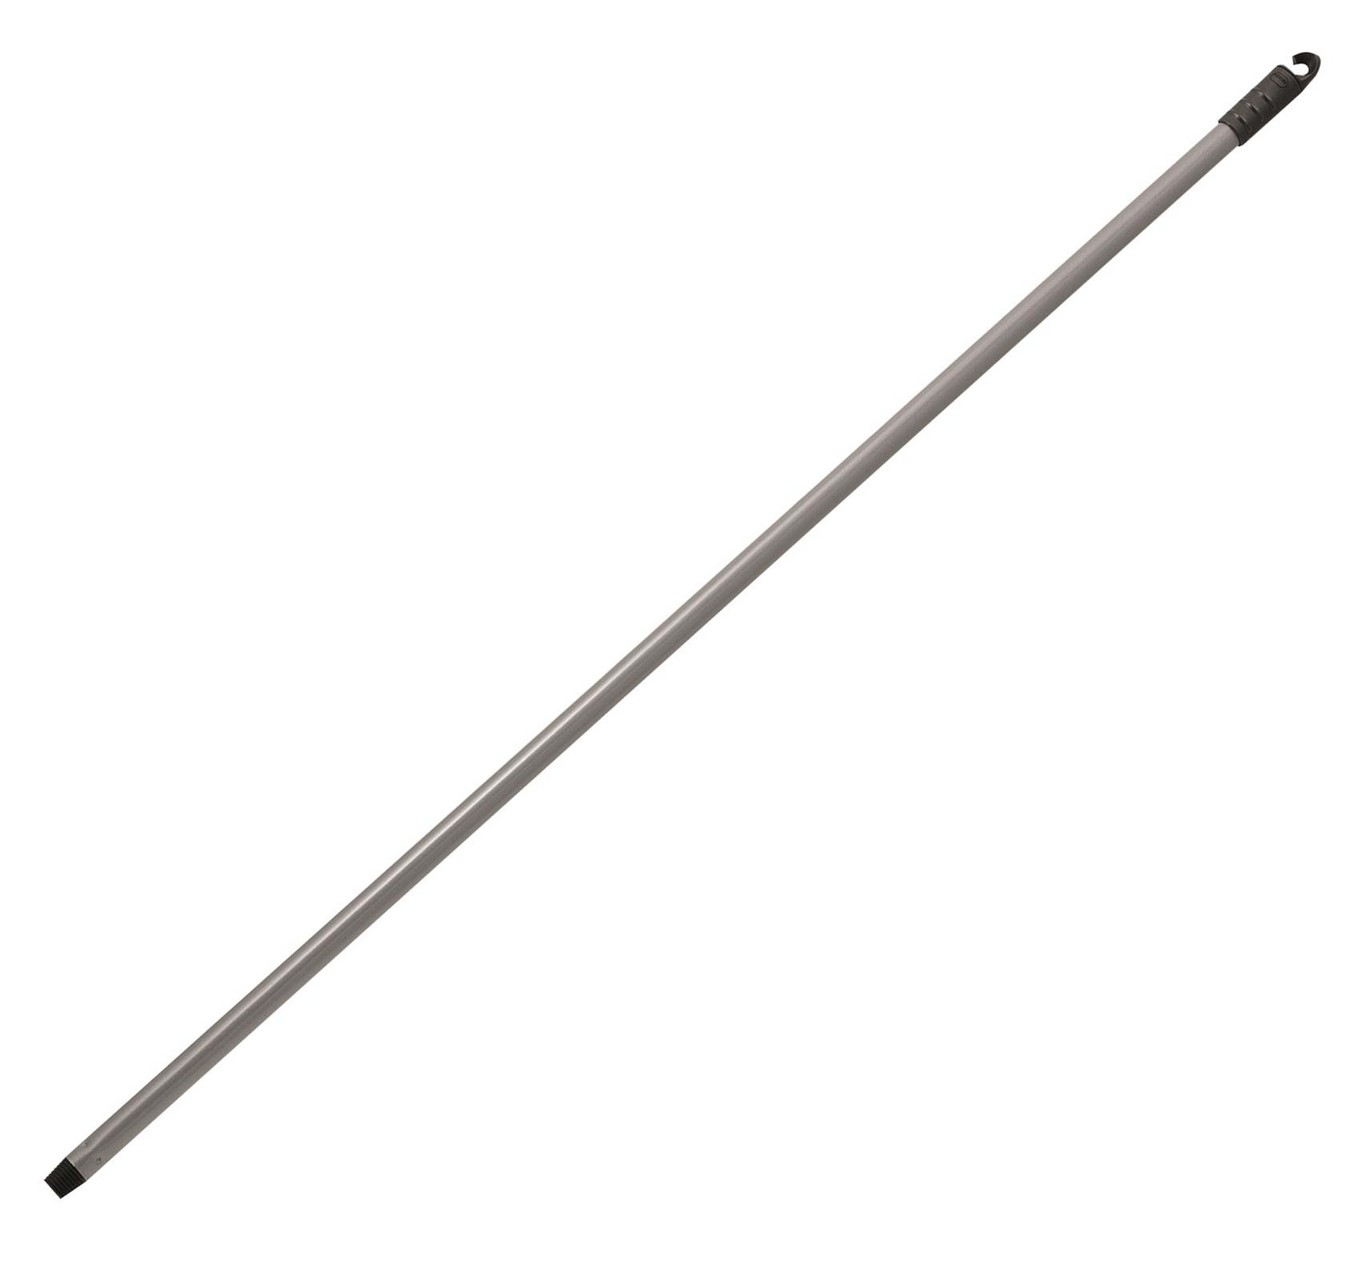 Broom Handle - Metallic